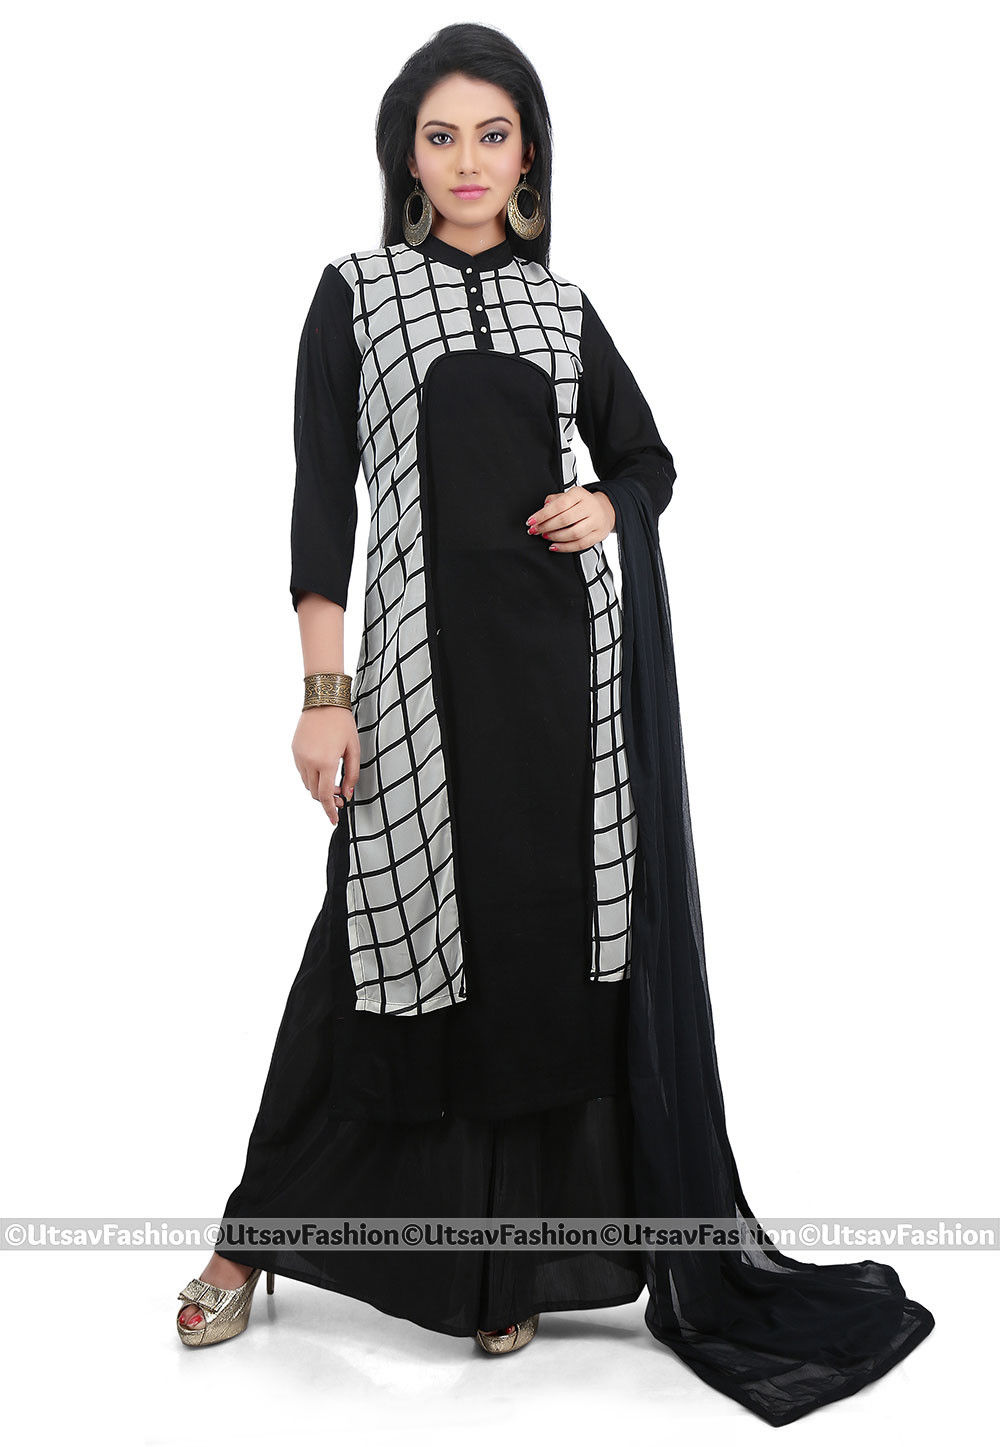 Printed Cotton Jacket Pakistani Suit in Black and White